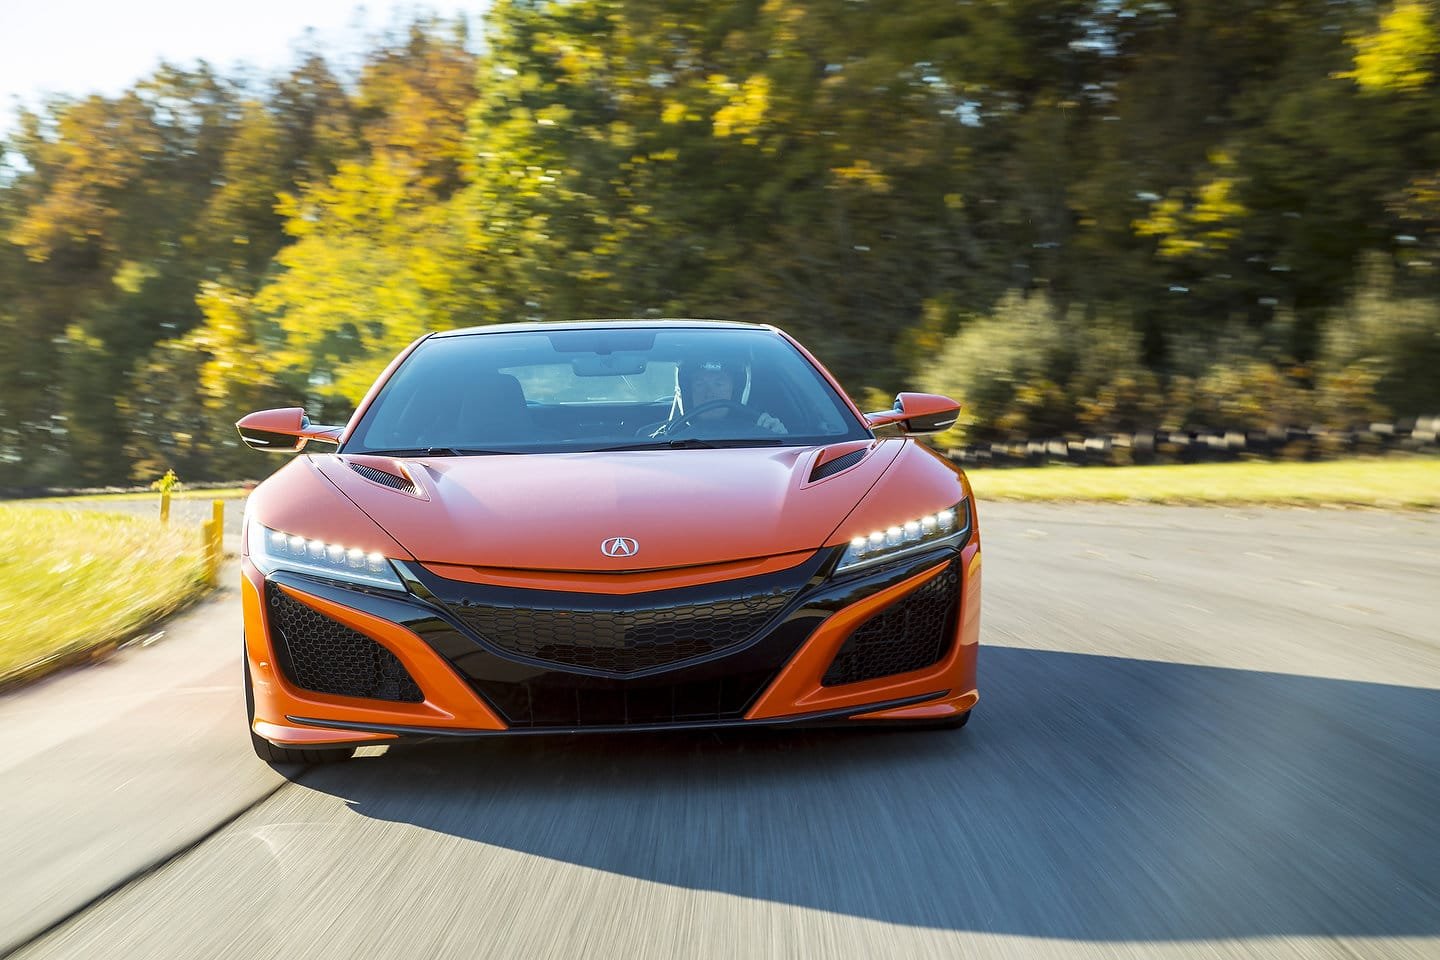 2019 Acura NSX front